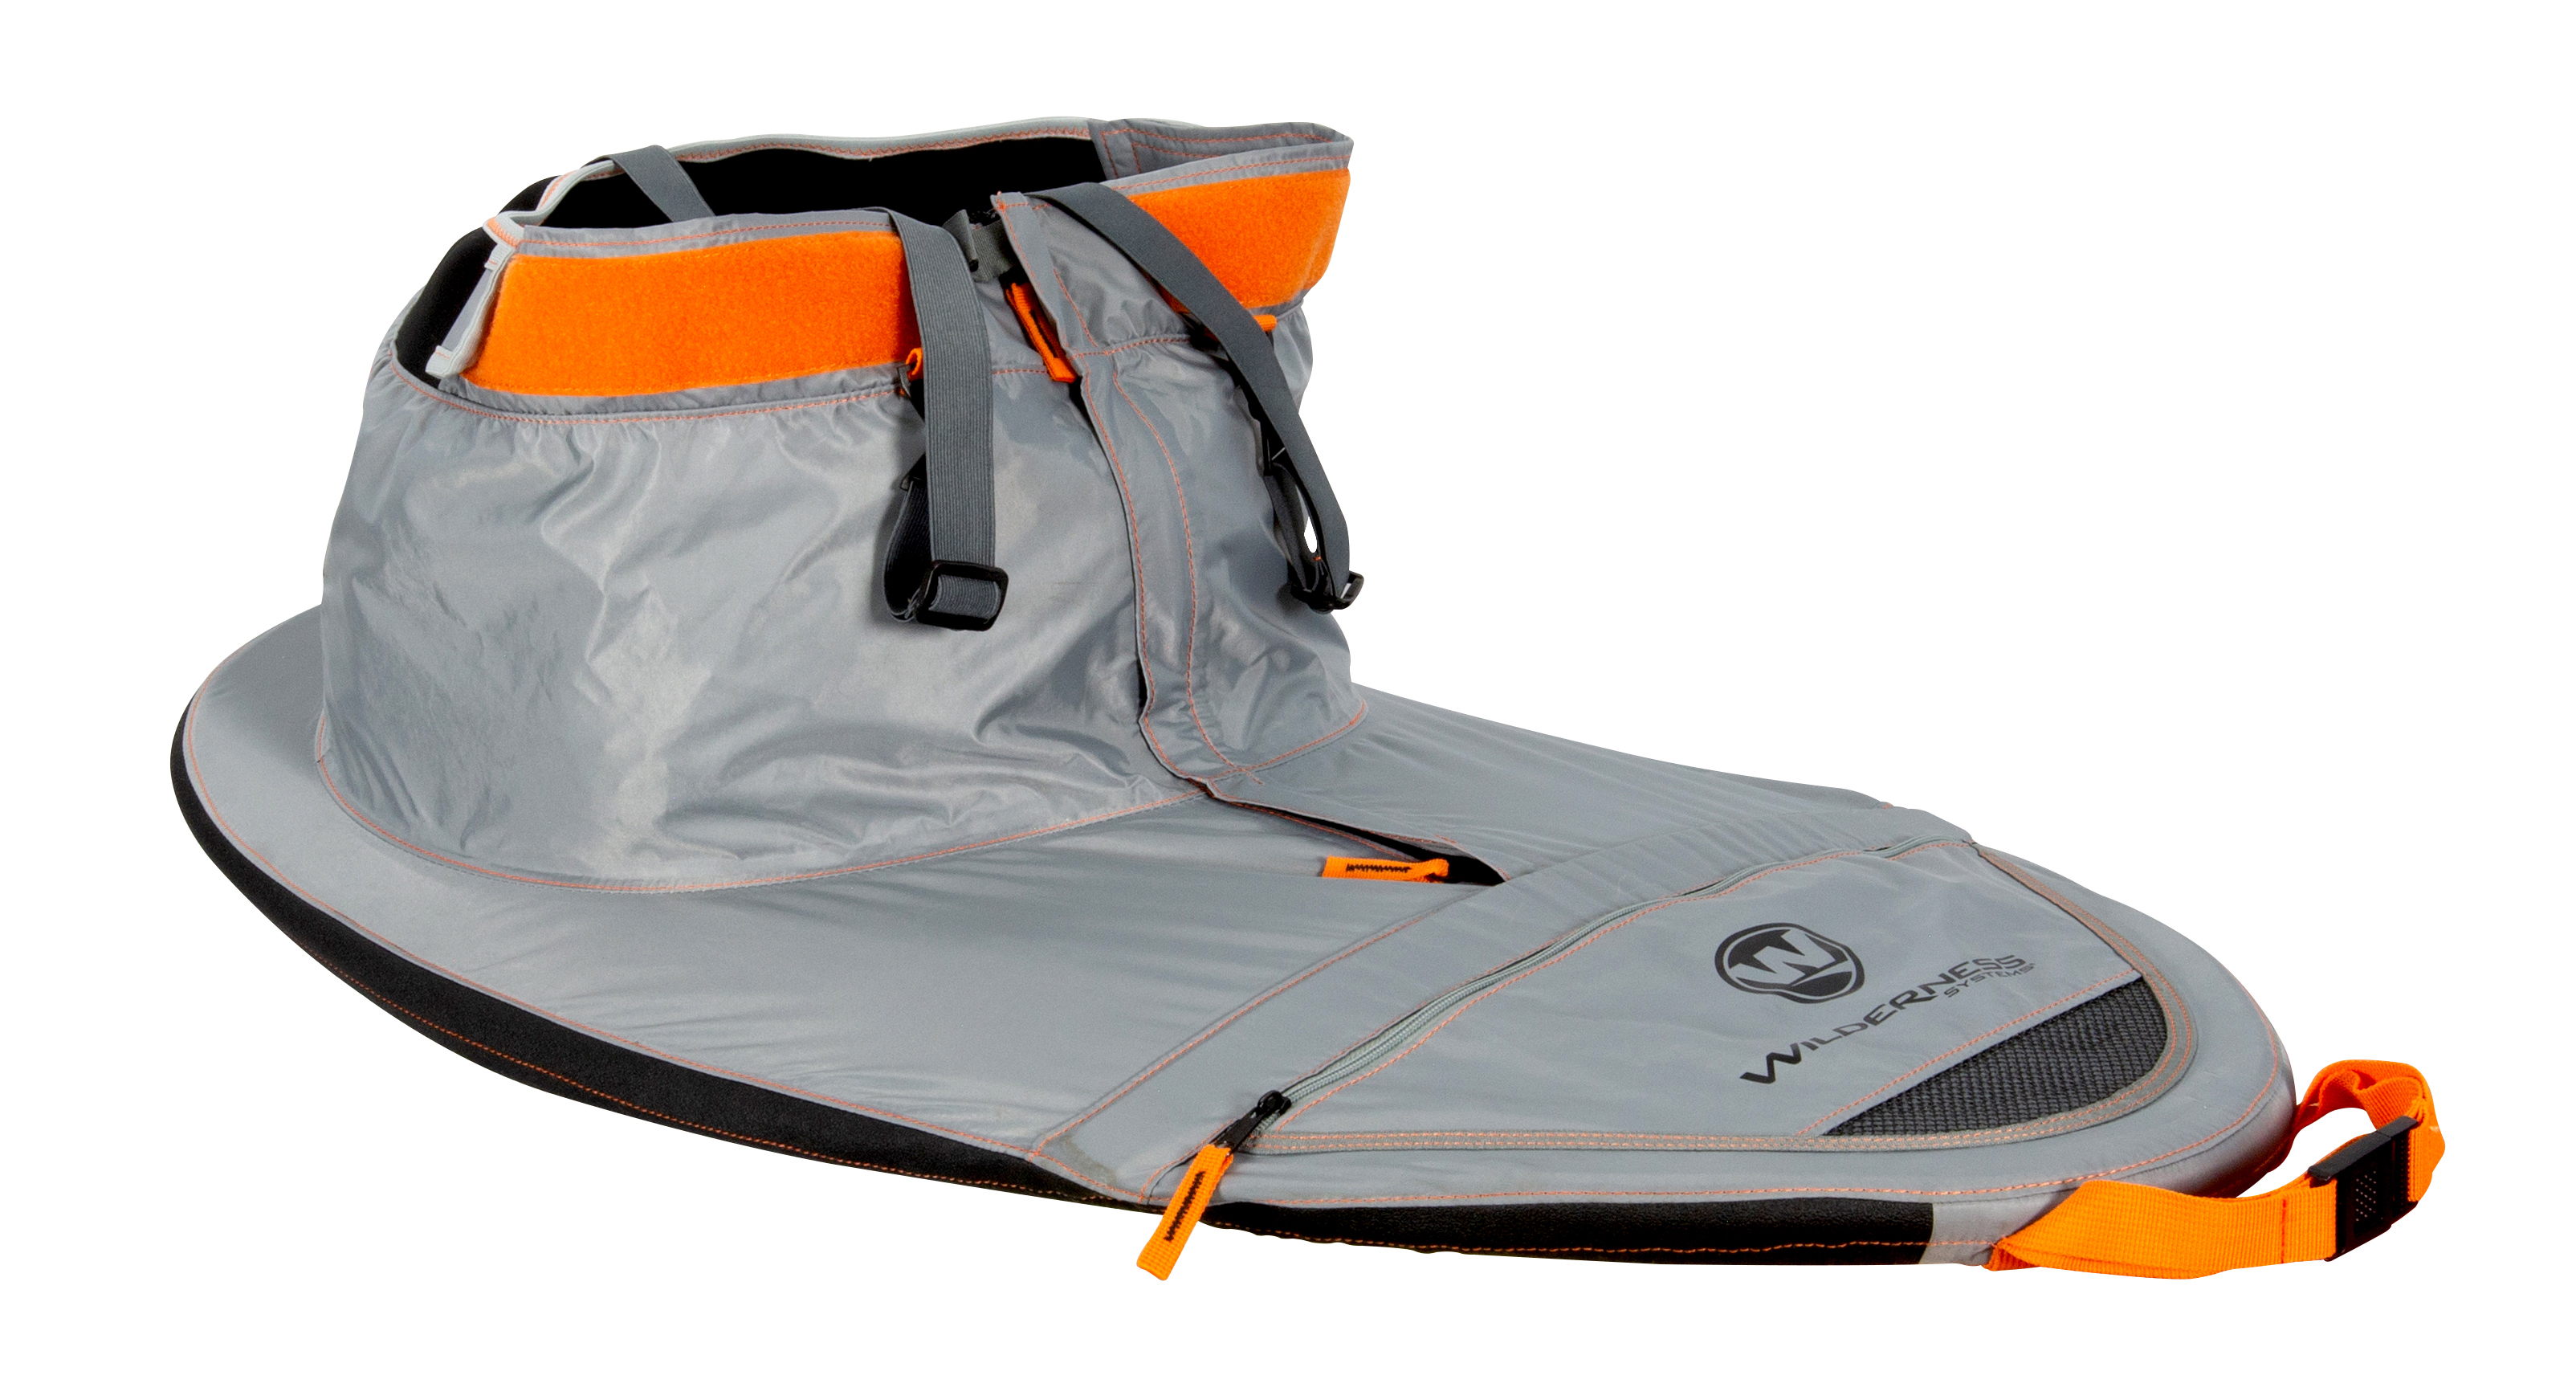 Sprayskirts & Cockpit Covers: TrueFit Skirt by Wilderness Systems - Image 2571